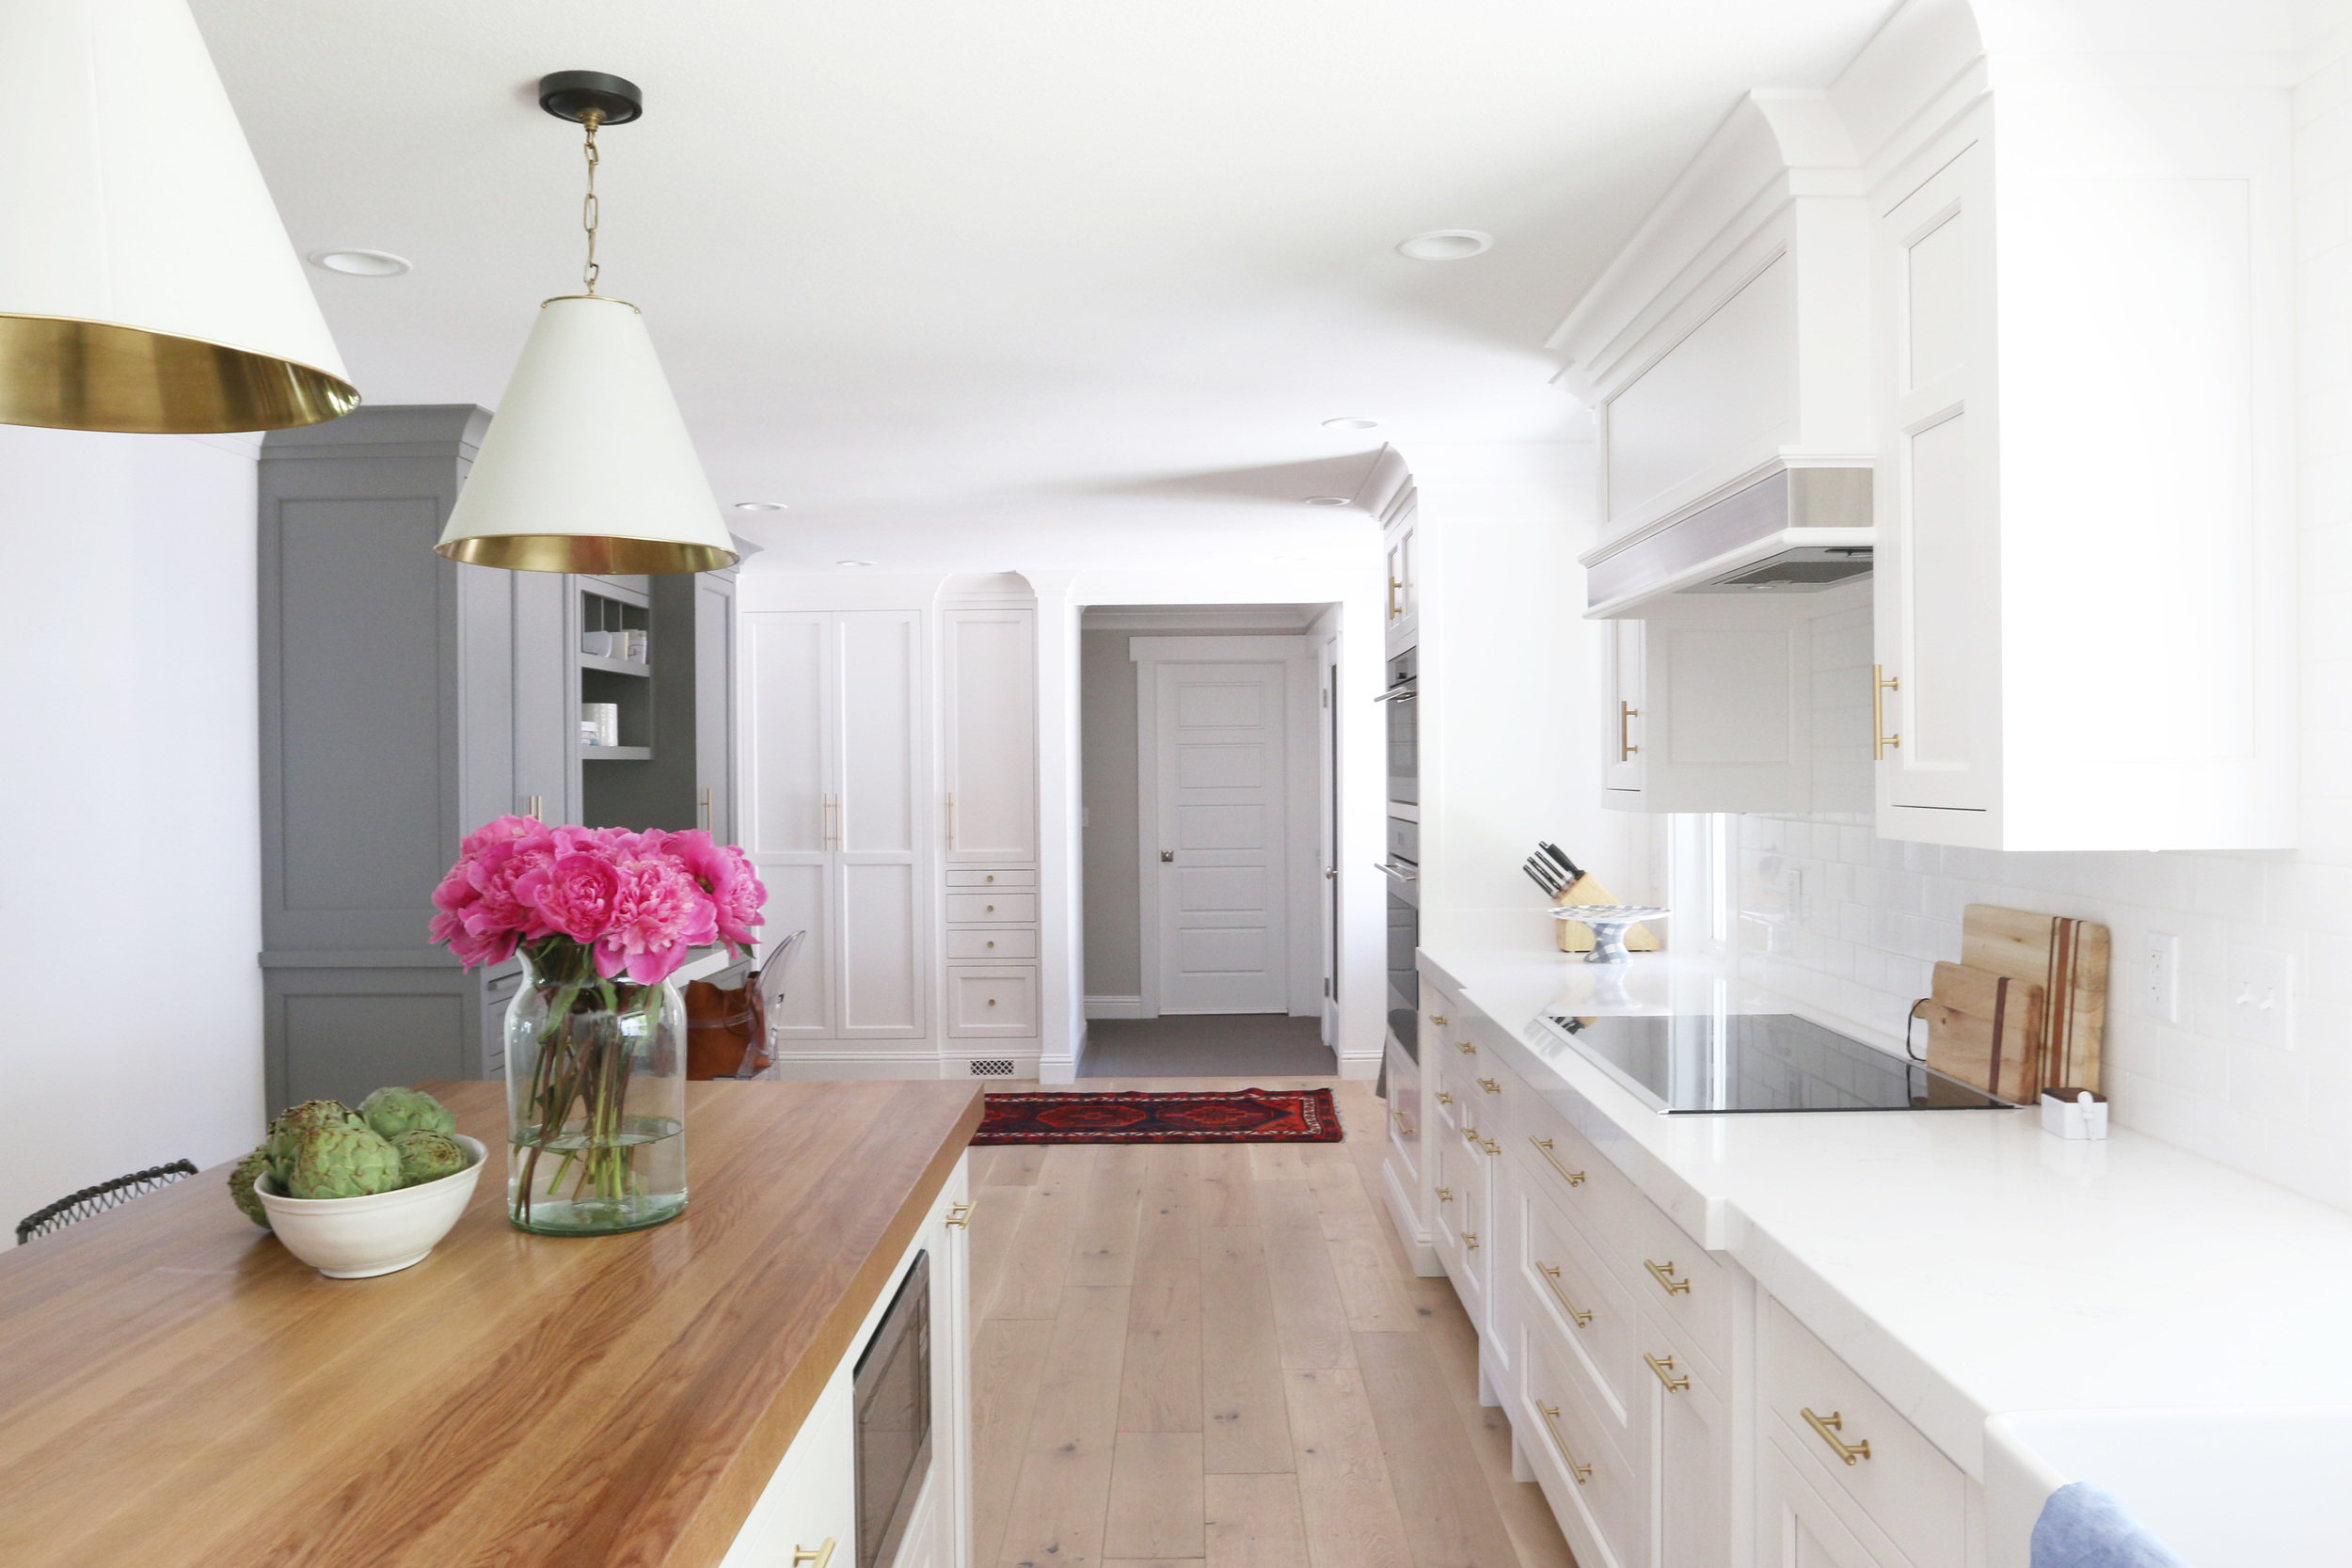 Studio McGee_White+Gold Kitchen 20 .jpg